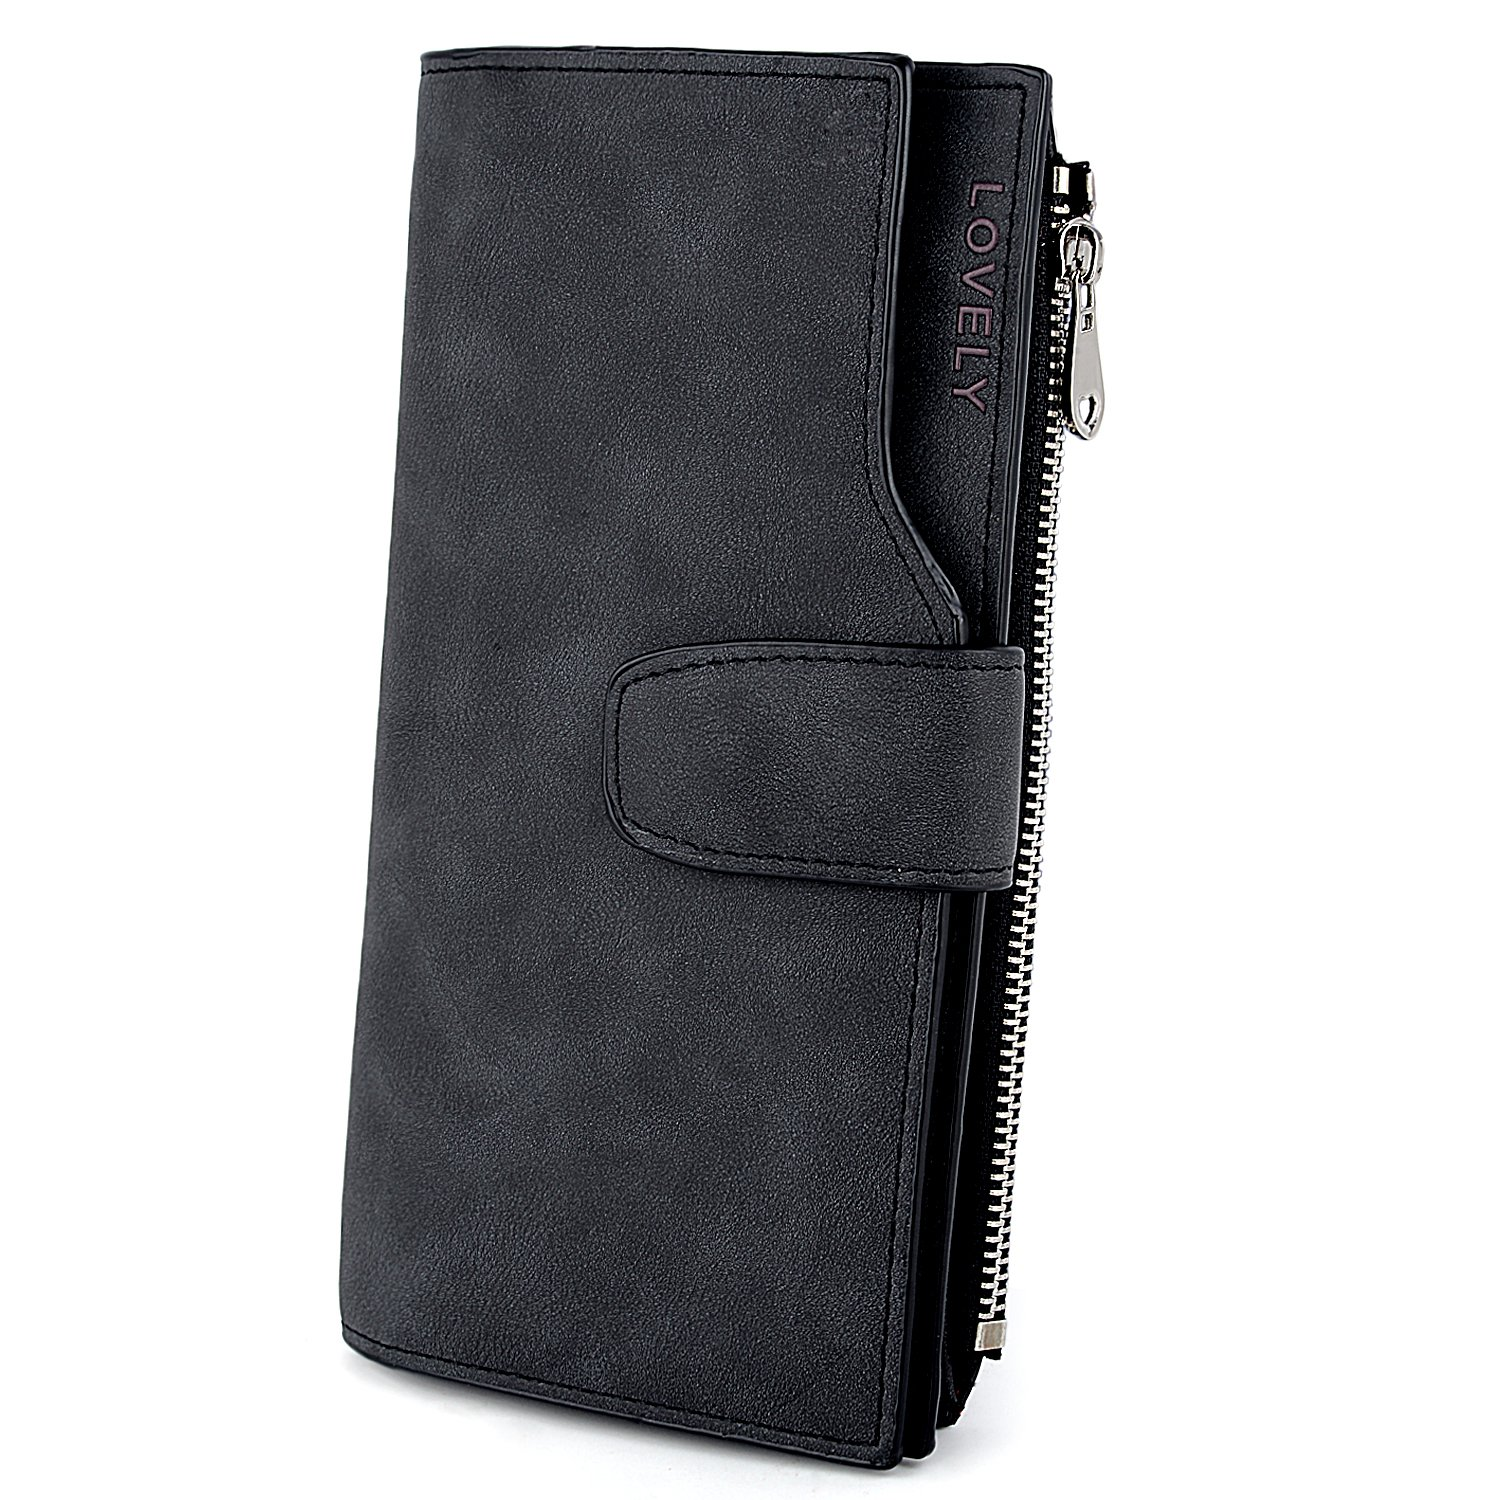 UTO RFID Wallet for Women PU Matte Leather Wallet Card Zipper Phone Holder Organizer Girls Coin Purse product image